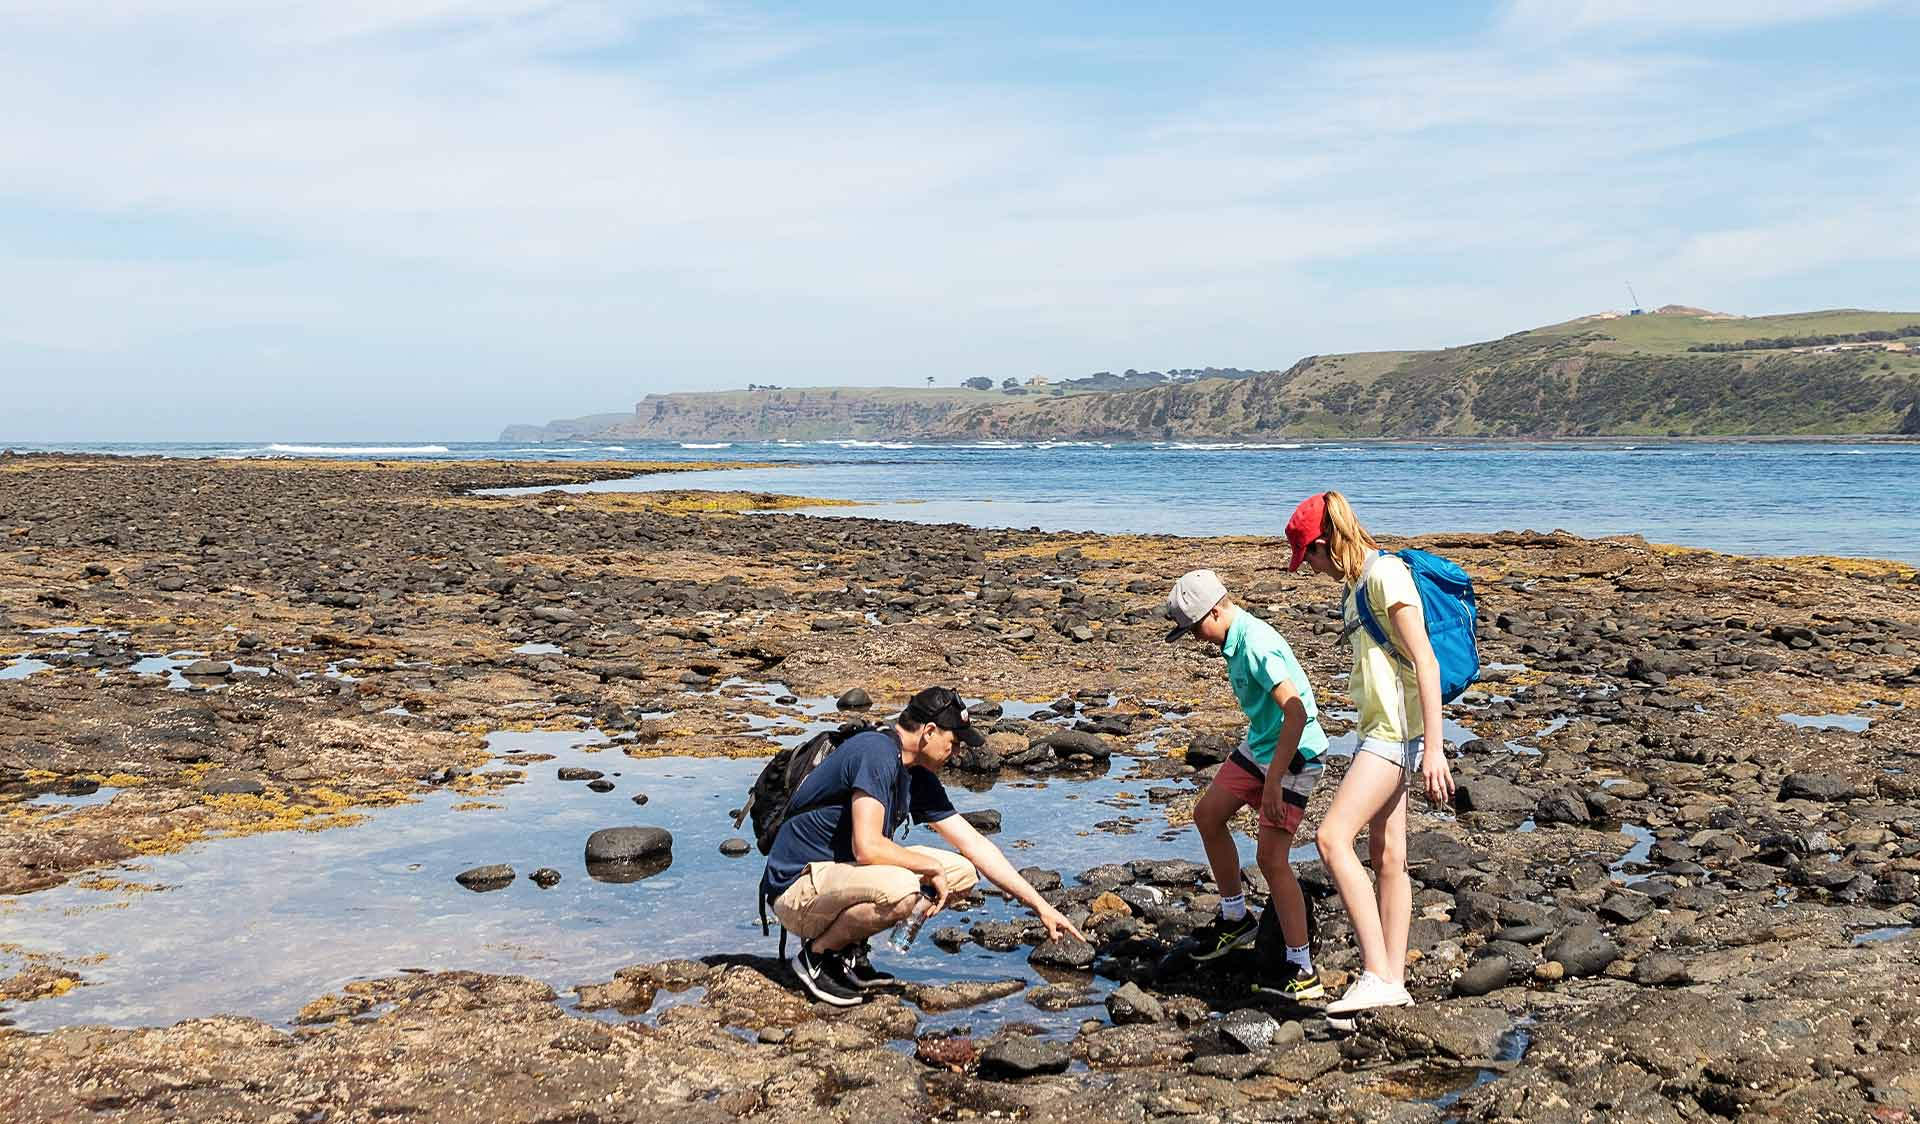 A father goes rockpooling with his two young children at Mushroom Reef.